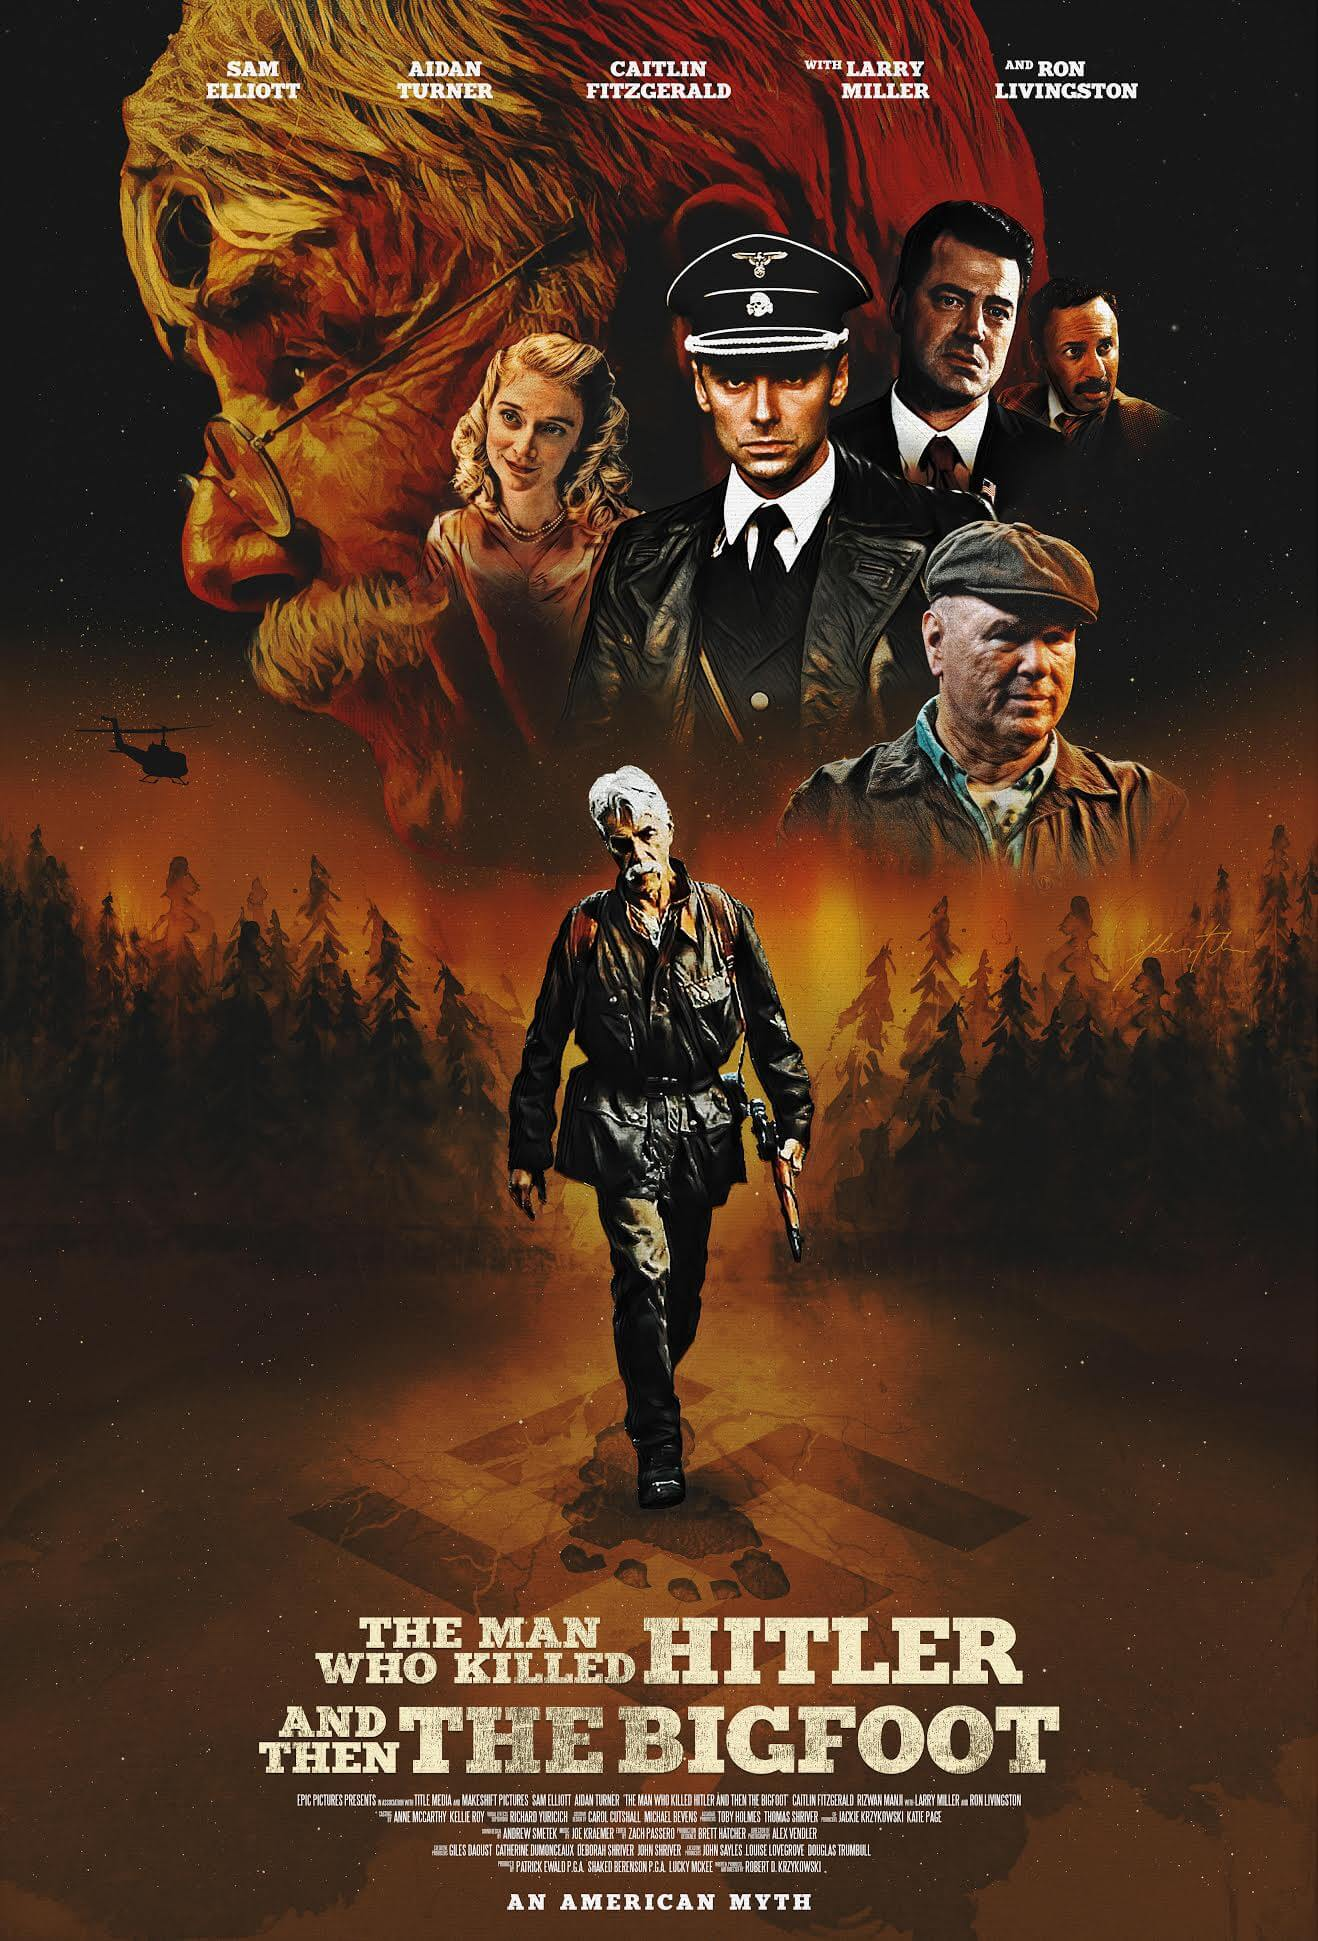 the man who killed hitler and then bigfoot cinematographe.it